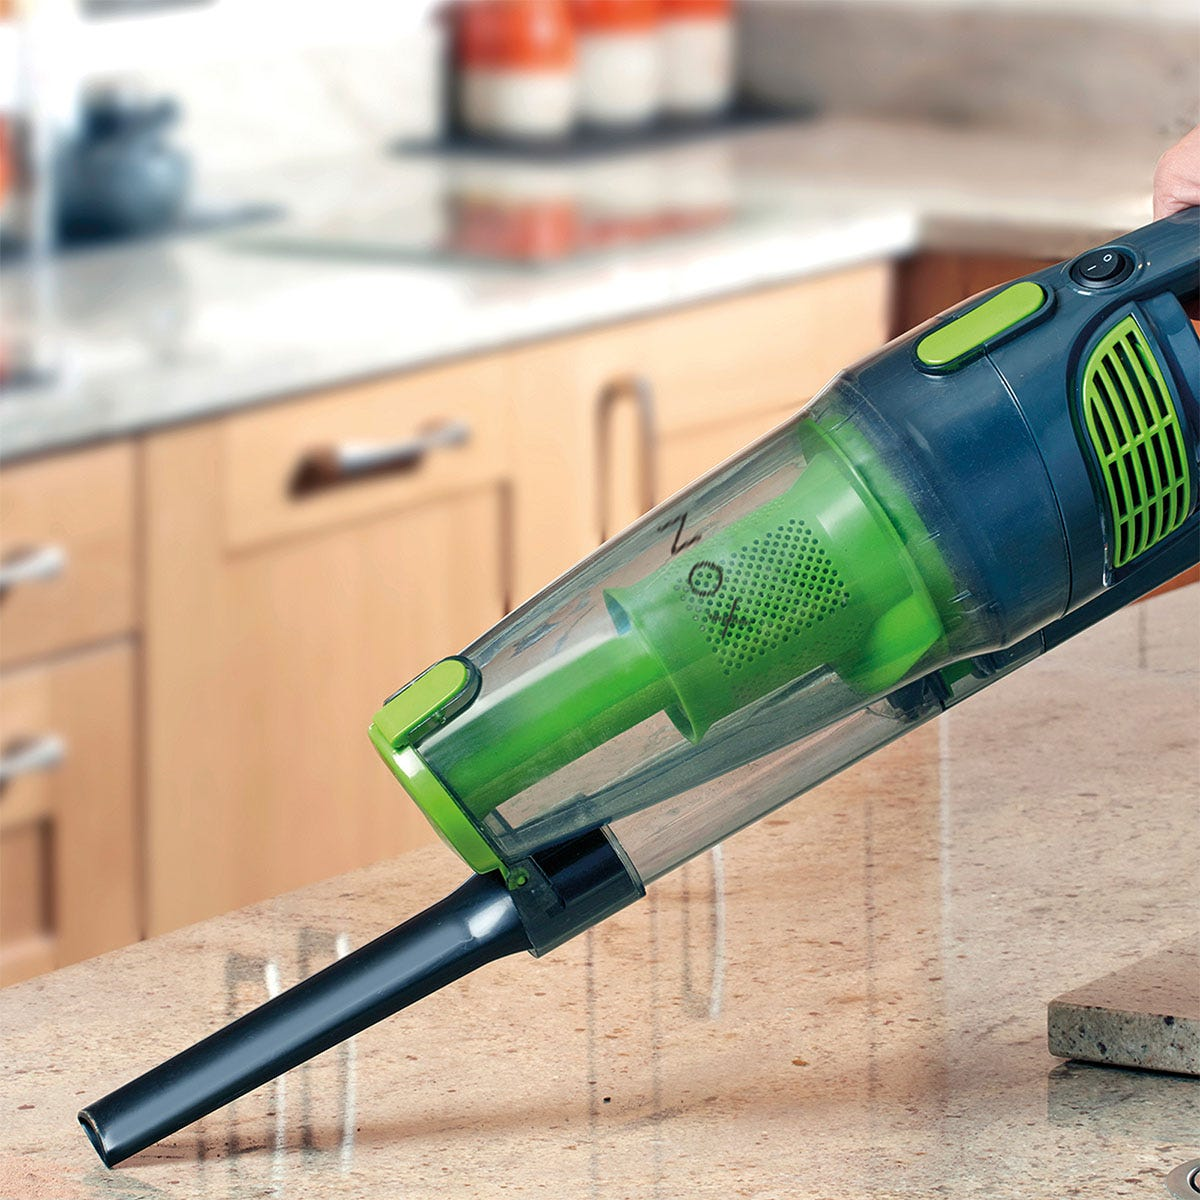 Maxi Vac Maxi G2729 Vac 800W 2-in-1 Stick Vacuum Cleaner - Grey and Green